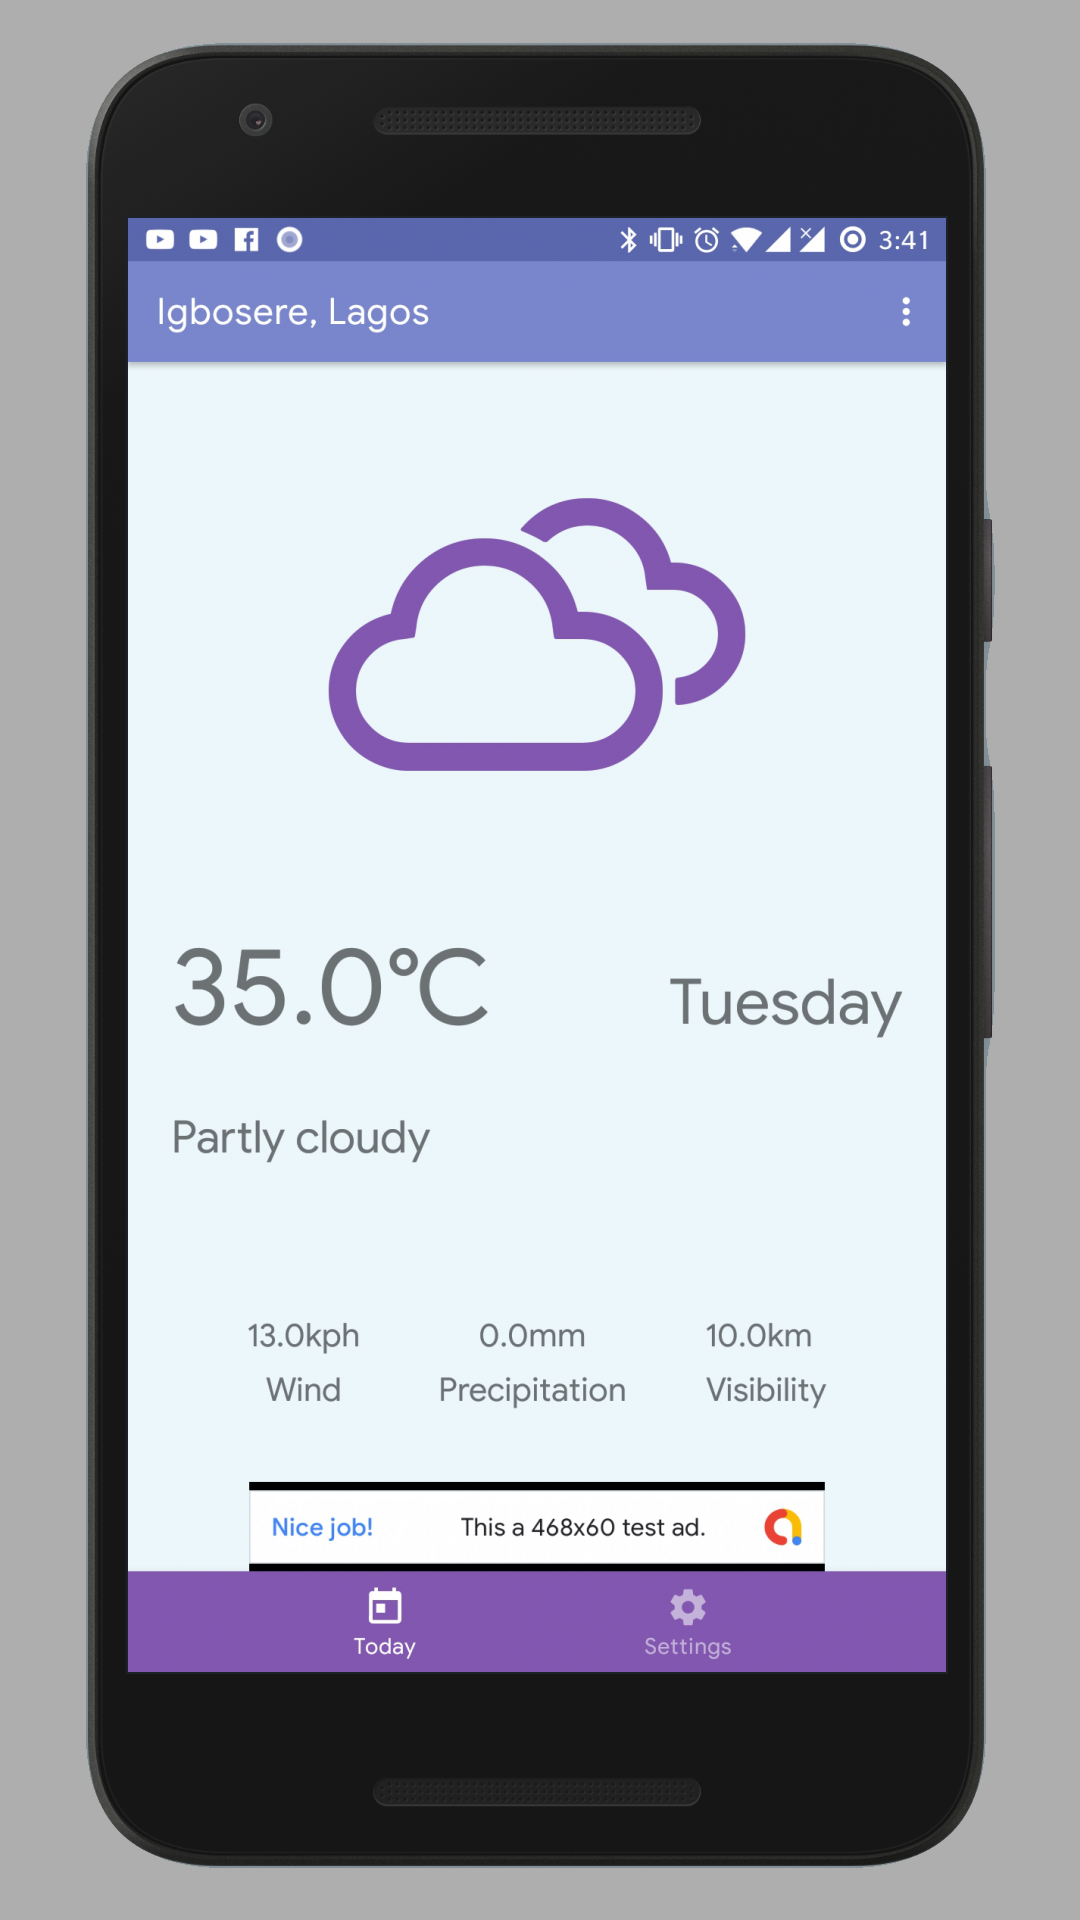 App displays real-time weather updates for user's location and for other locations set by user. App uses MVVM with Repository pattern, dagger dependency injection, NetworkBoundResource, Navigation component, App widget, Alarm manager, and other Android Je